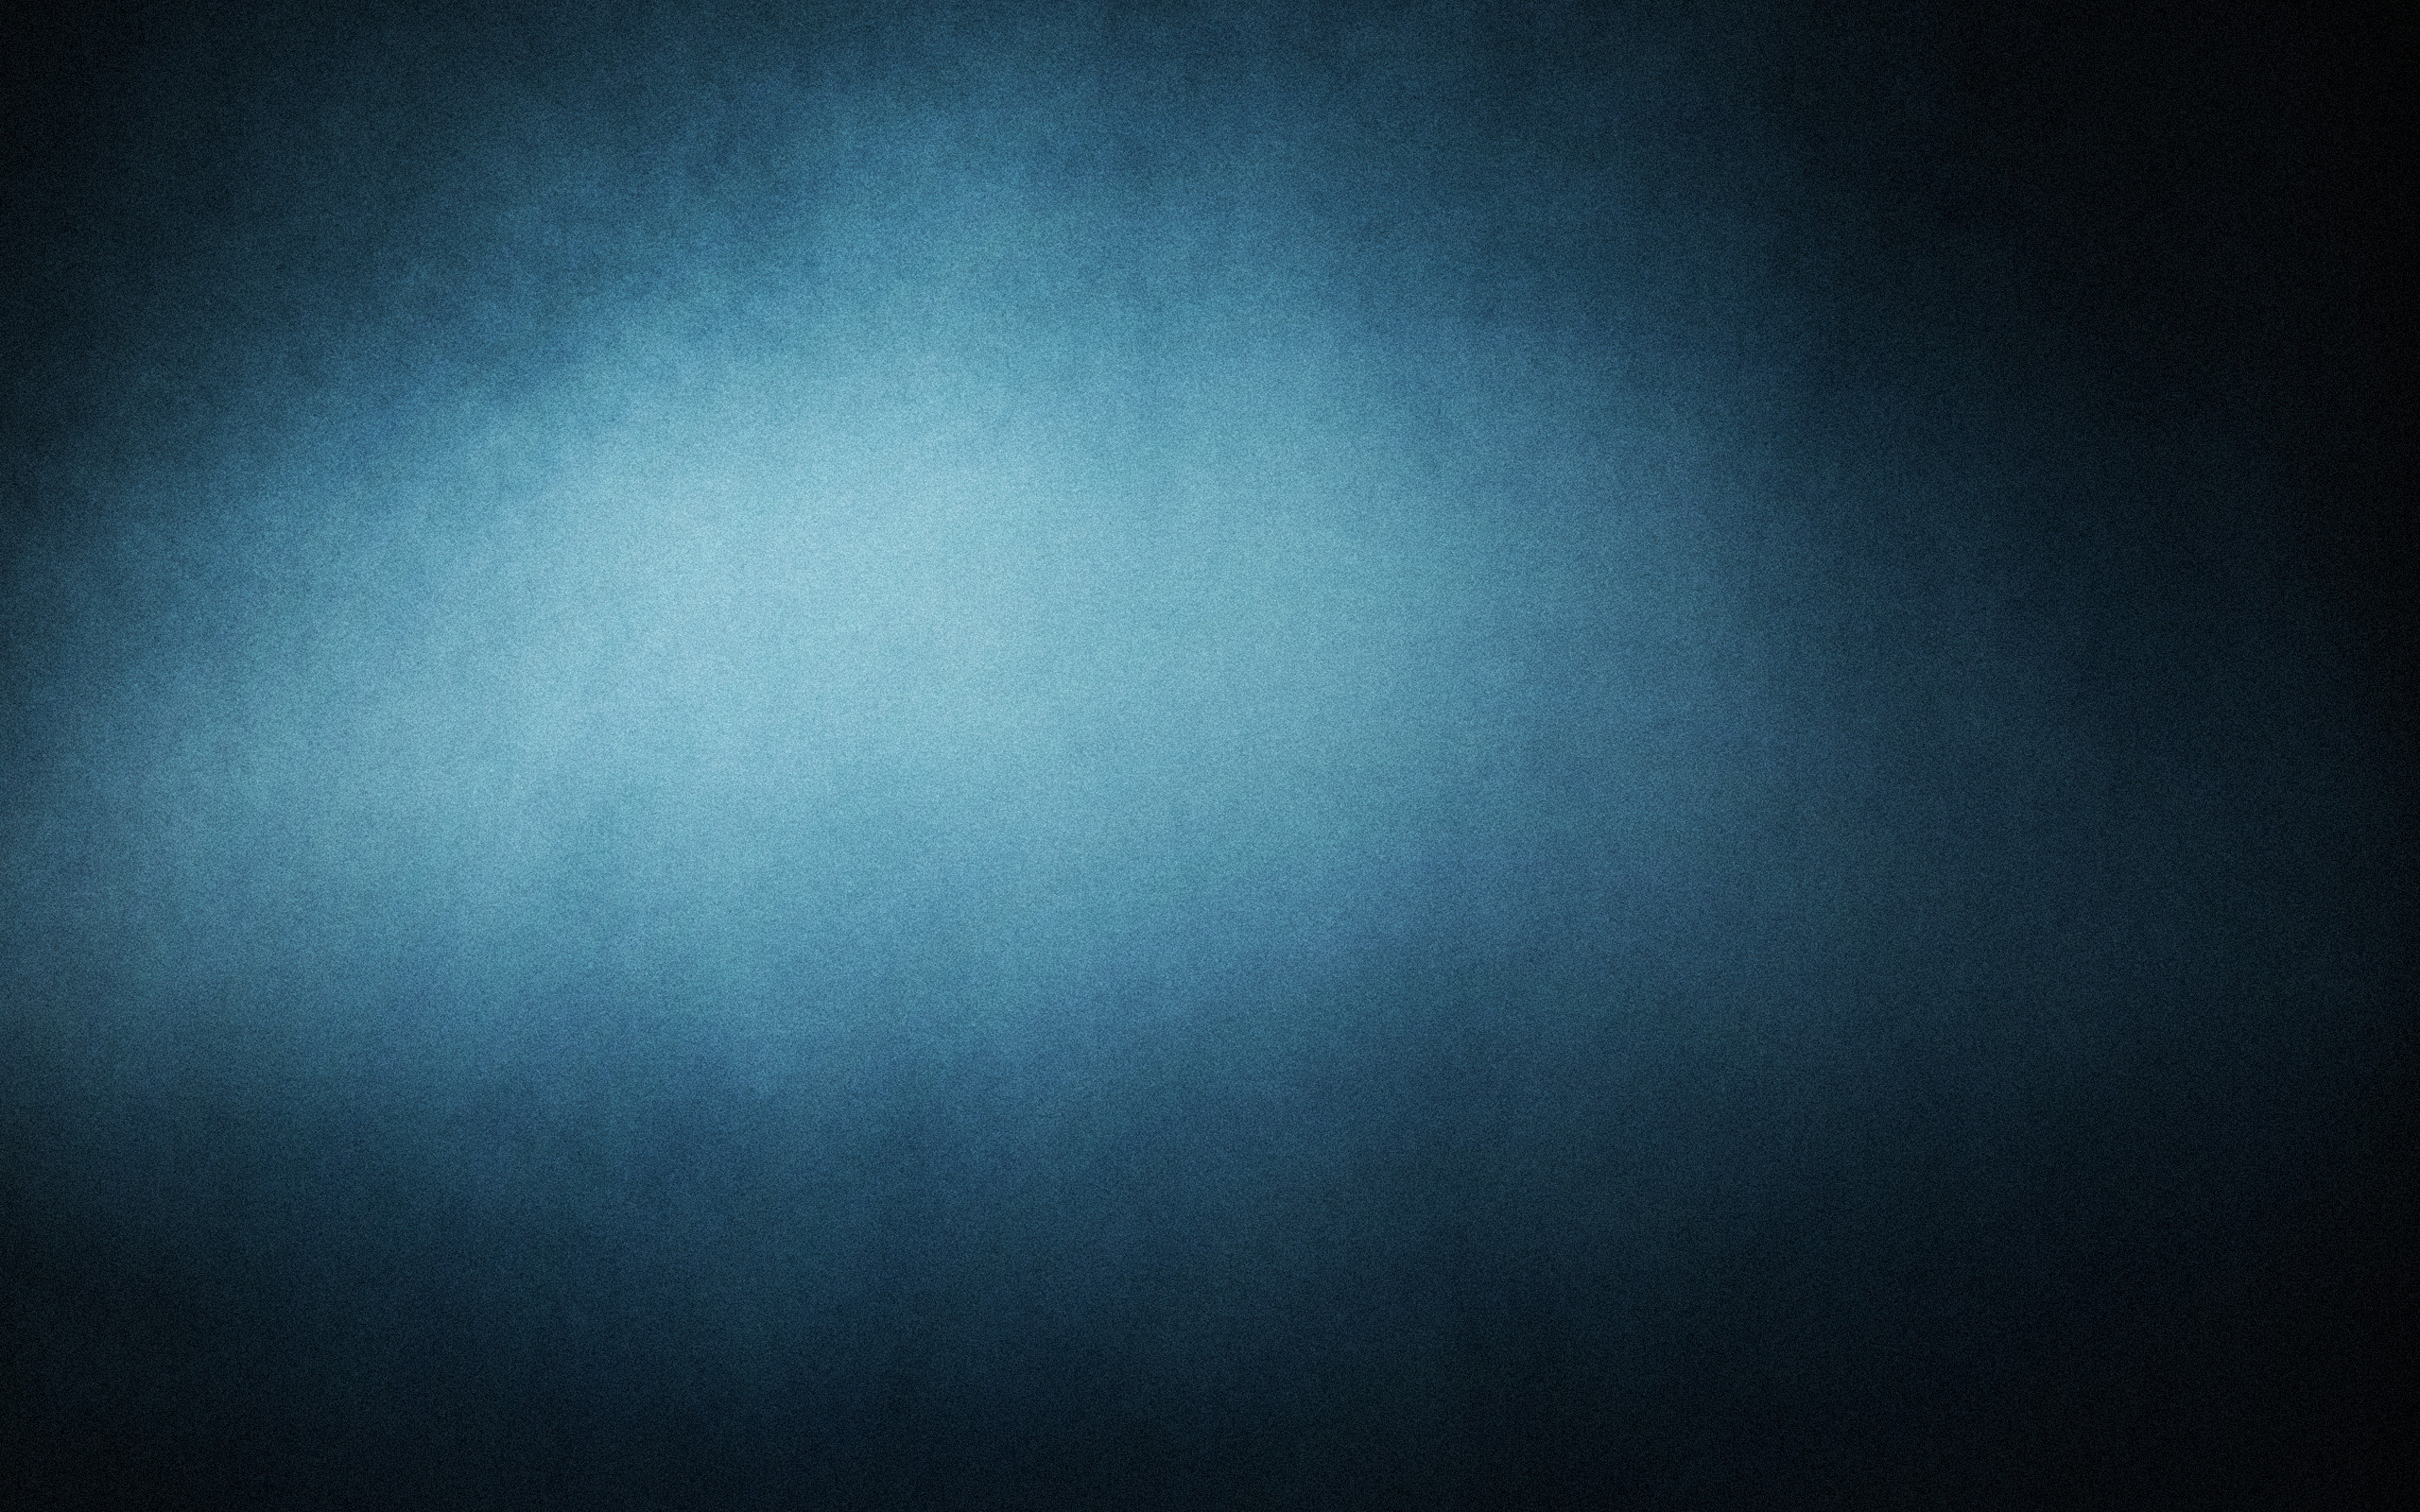 dark blue background AstrizStudios 2560x1600